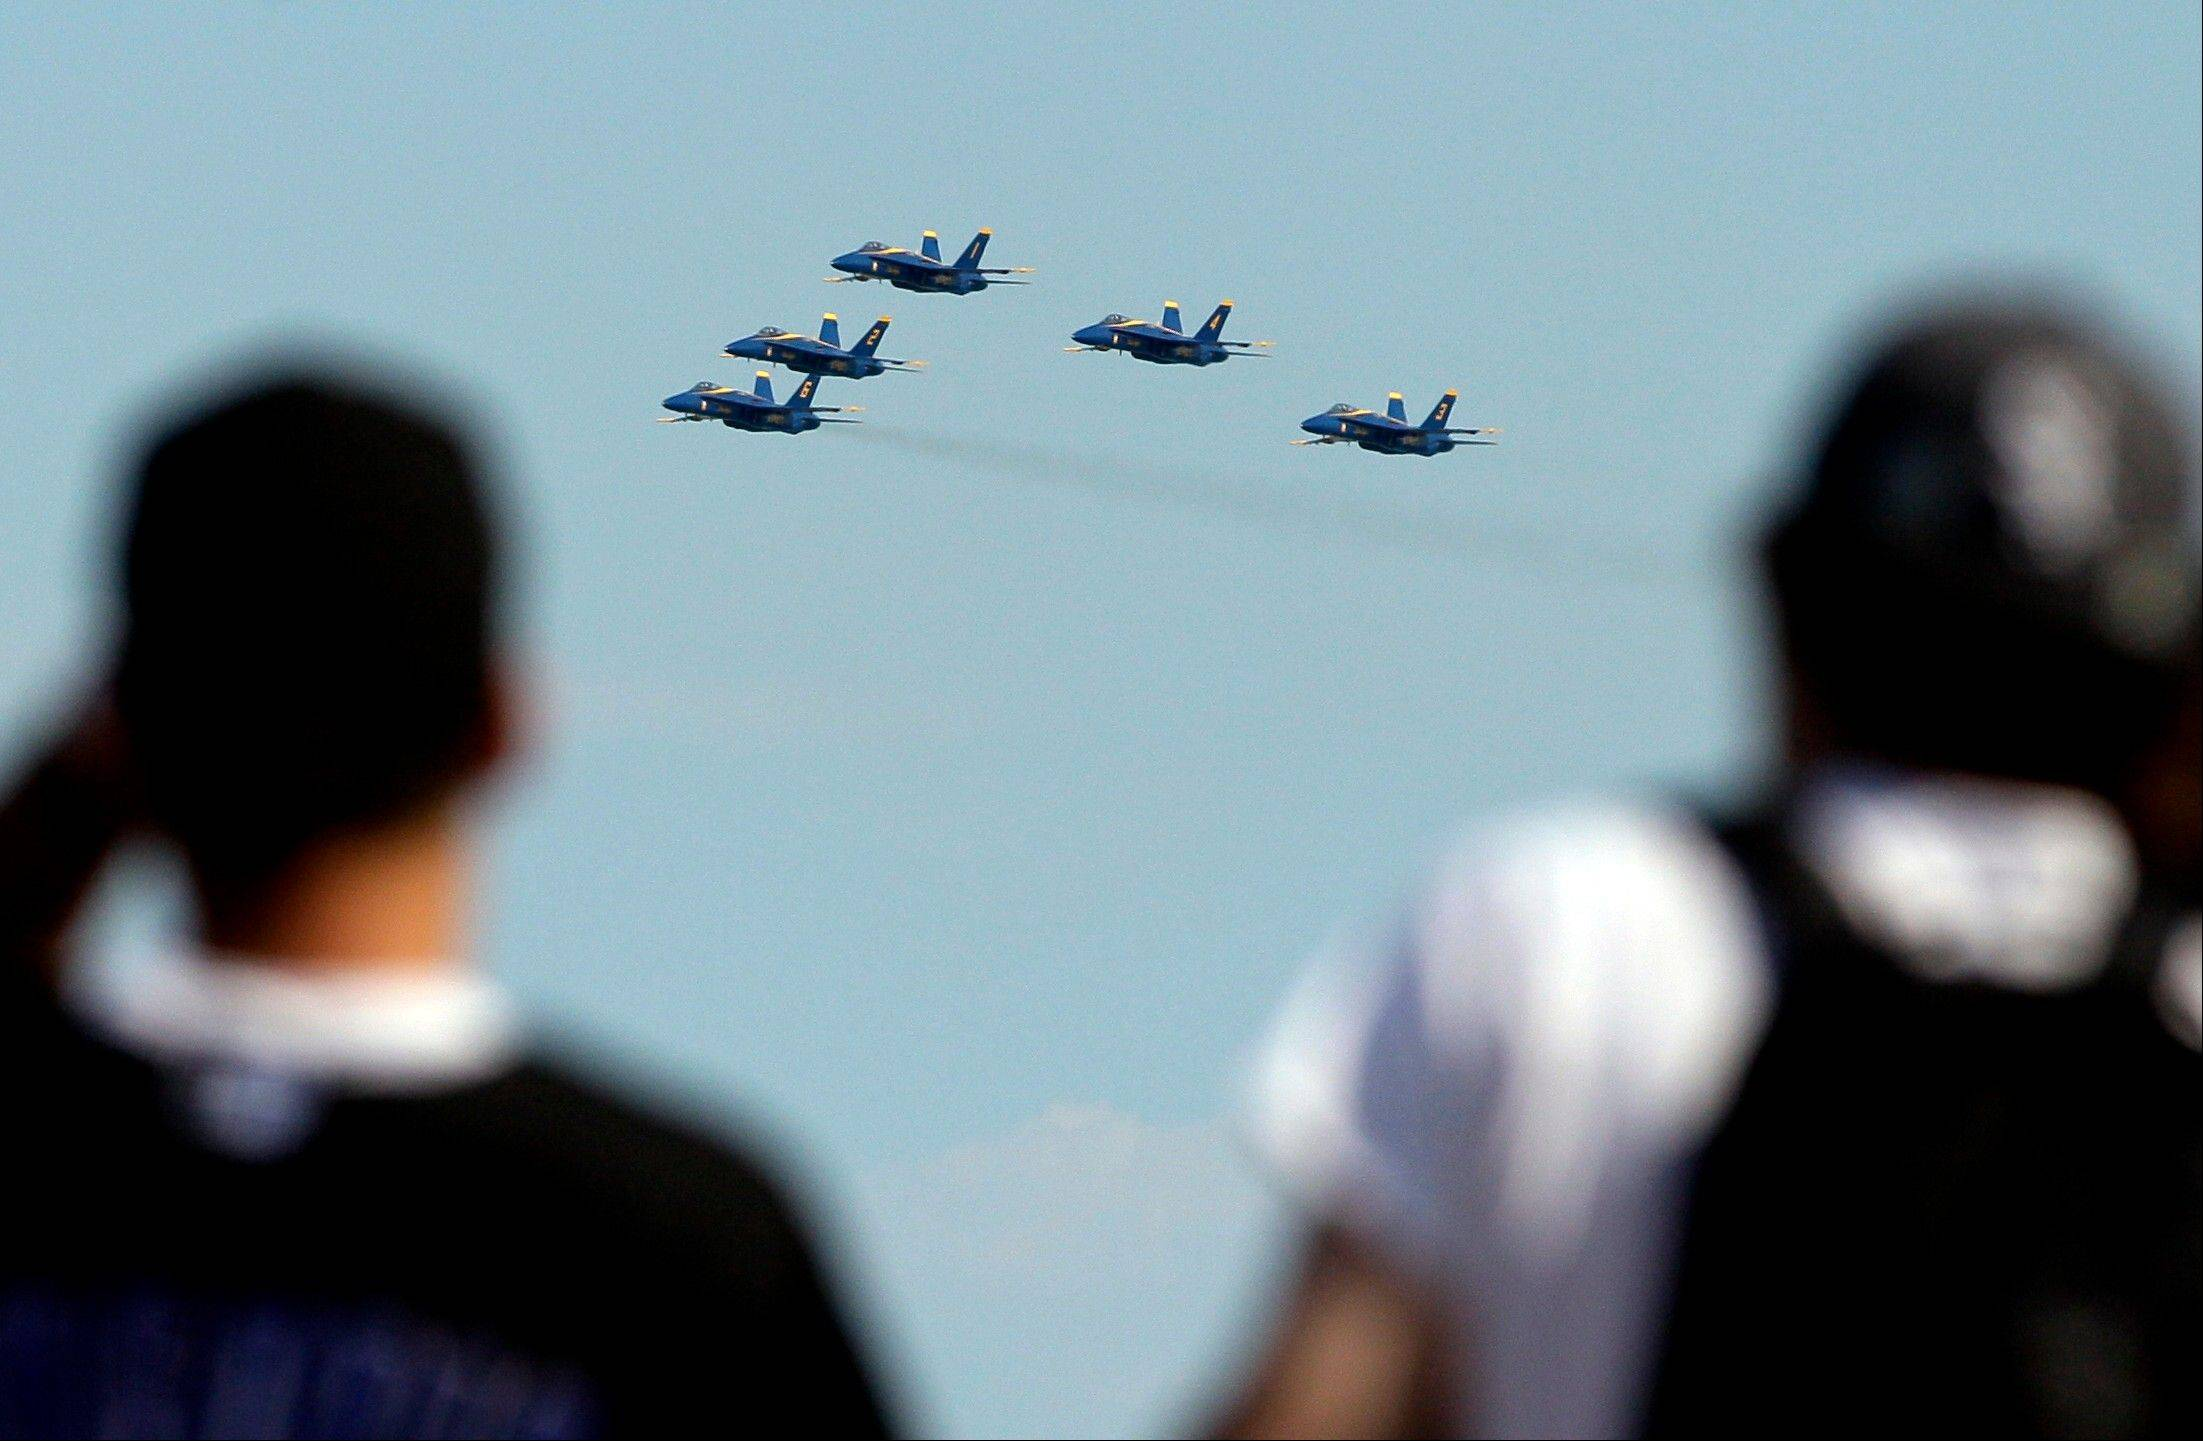 The U.S. Navy Blue Angels perform over Lake Michigan during the Chicago Air and Water Show on Sunday, Aug. 19, 2012, in Chicago.